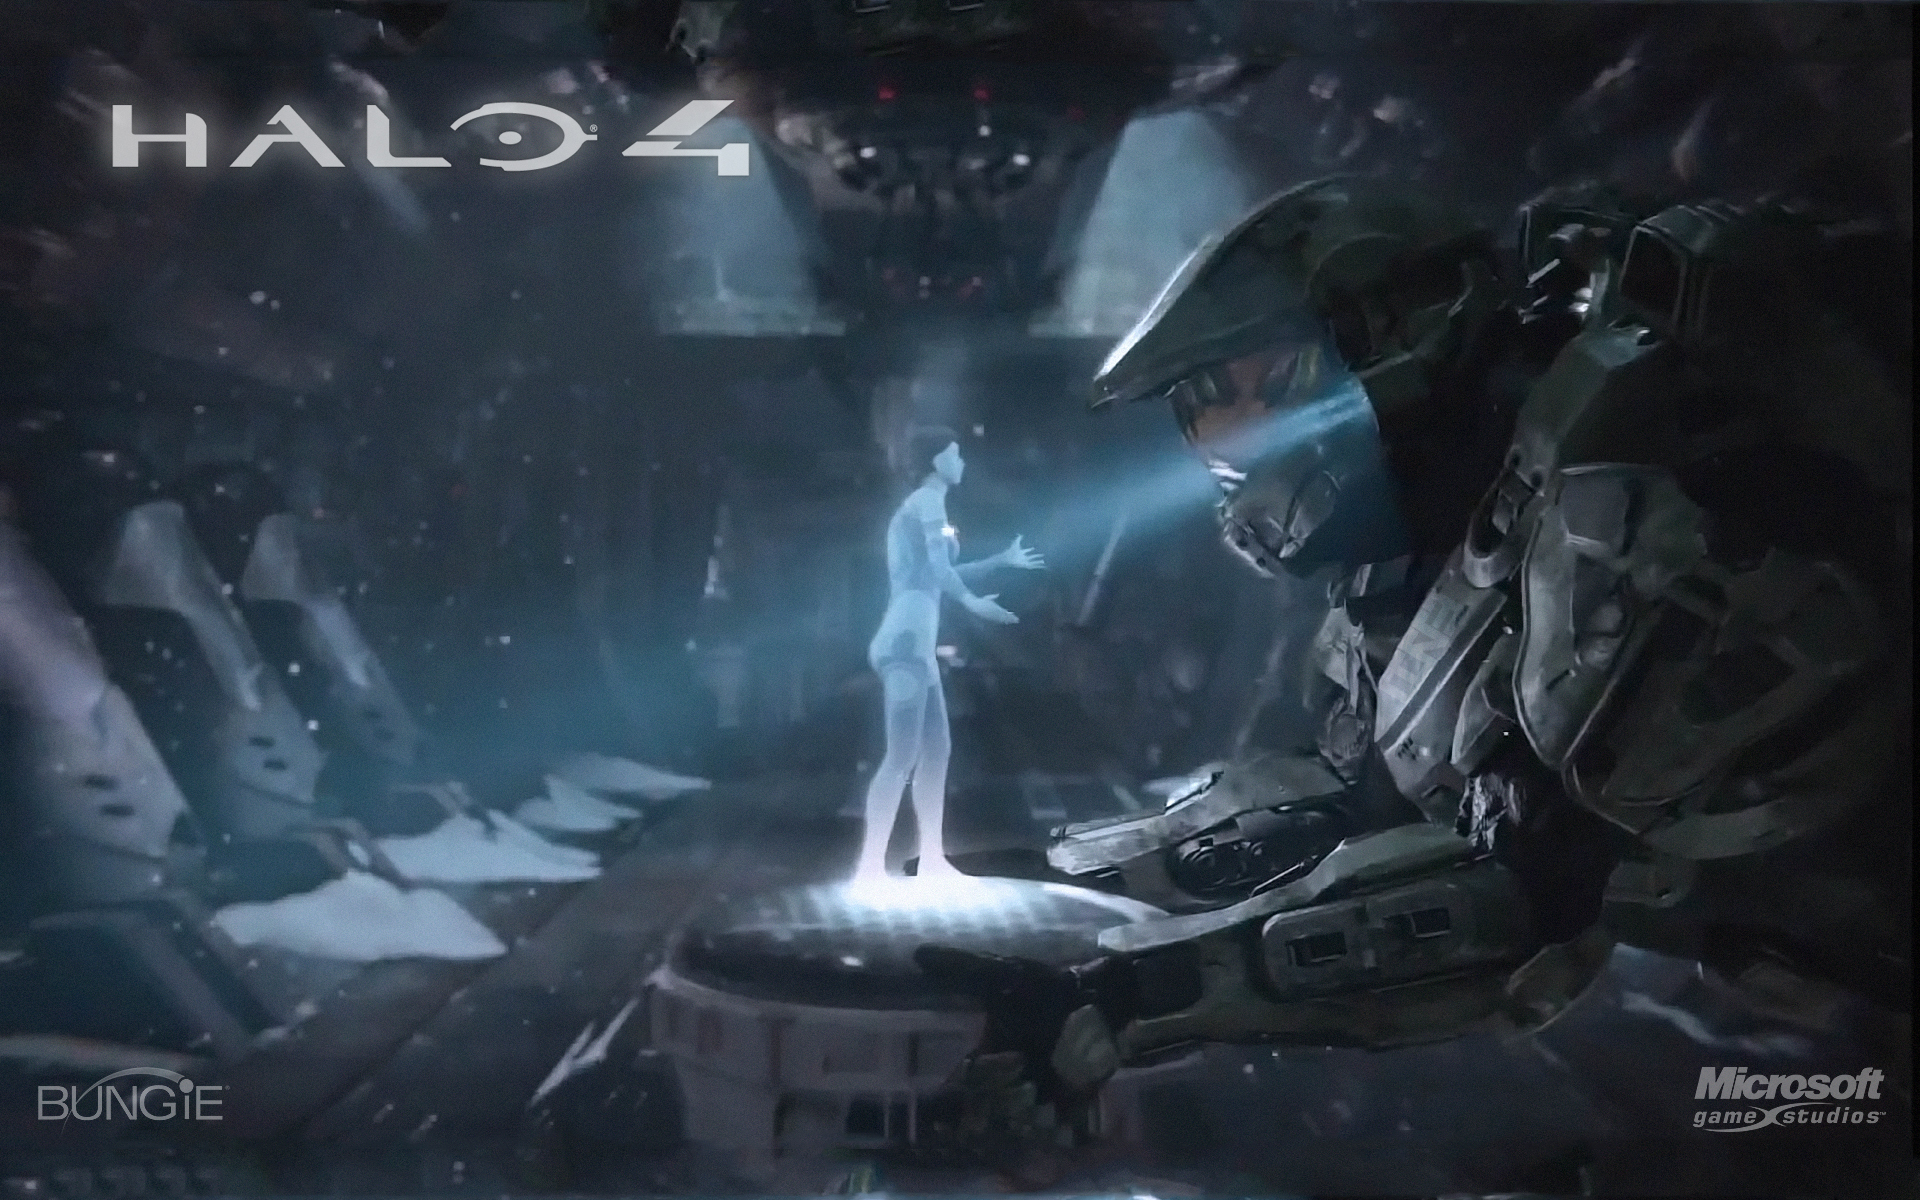 Halo 4 HD Backgrounds 1920x1200